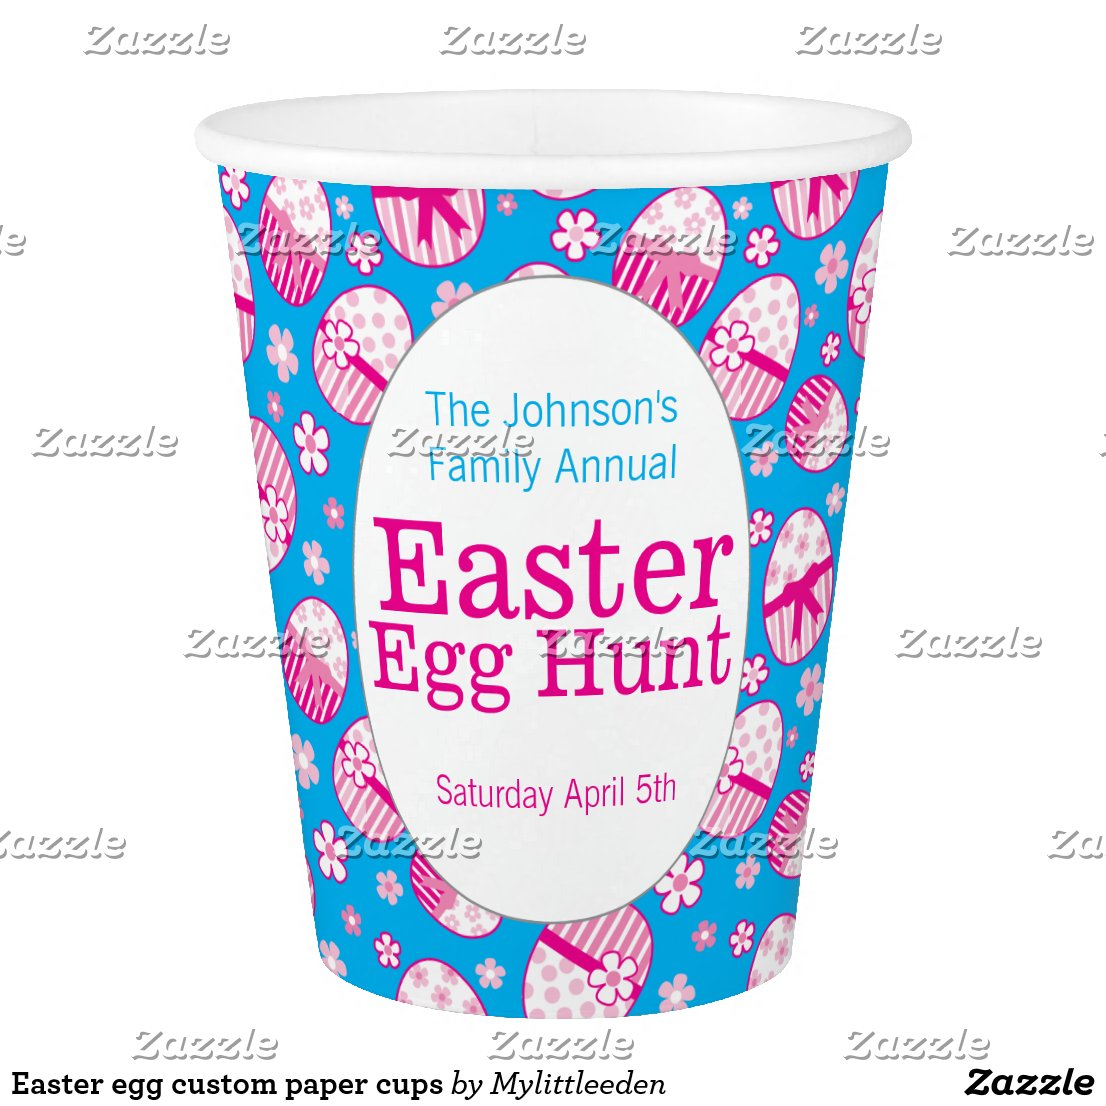 Easter egg custom paper cups